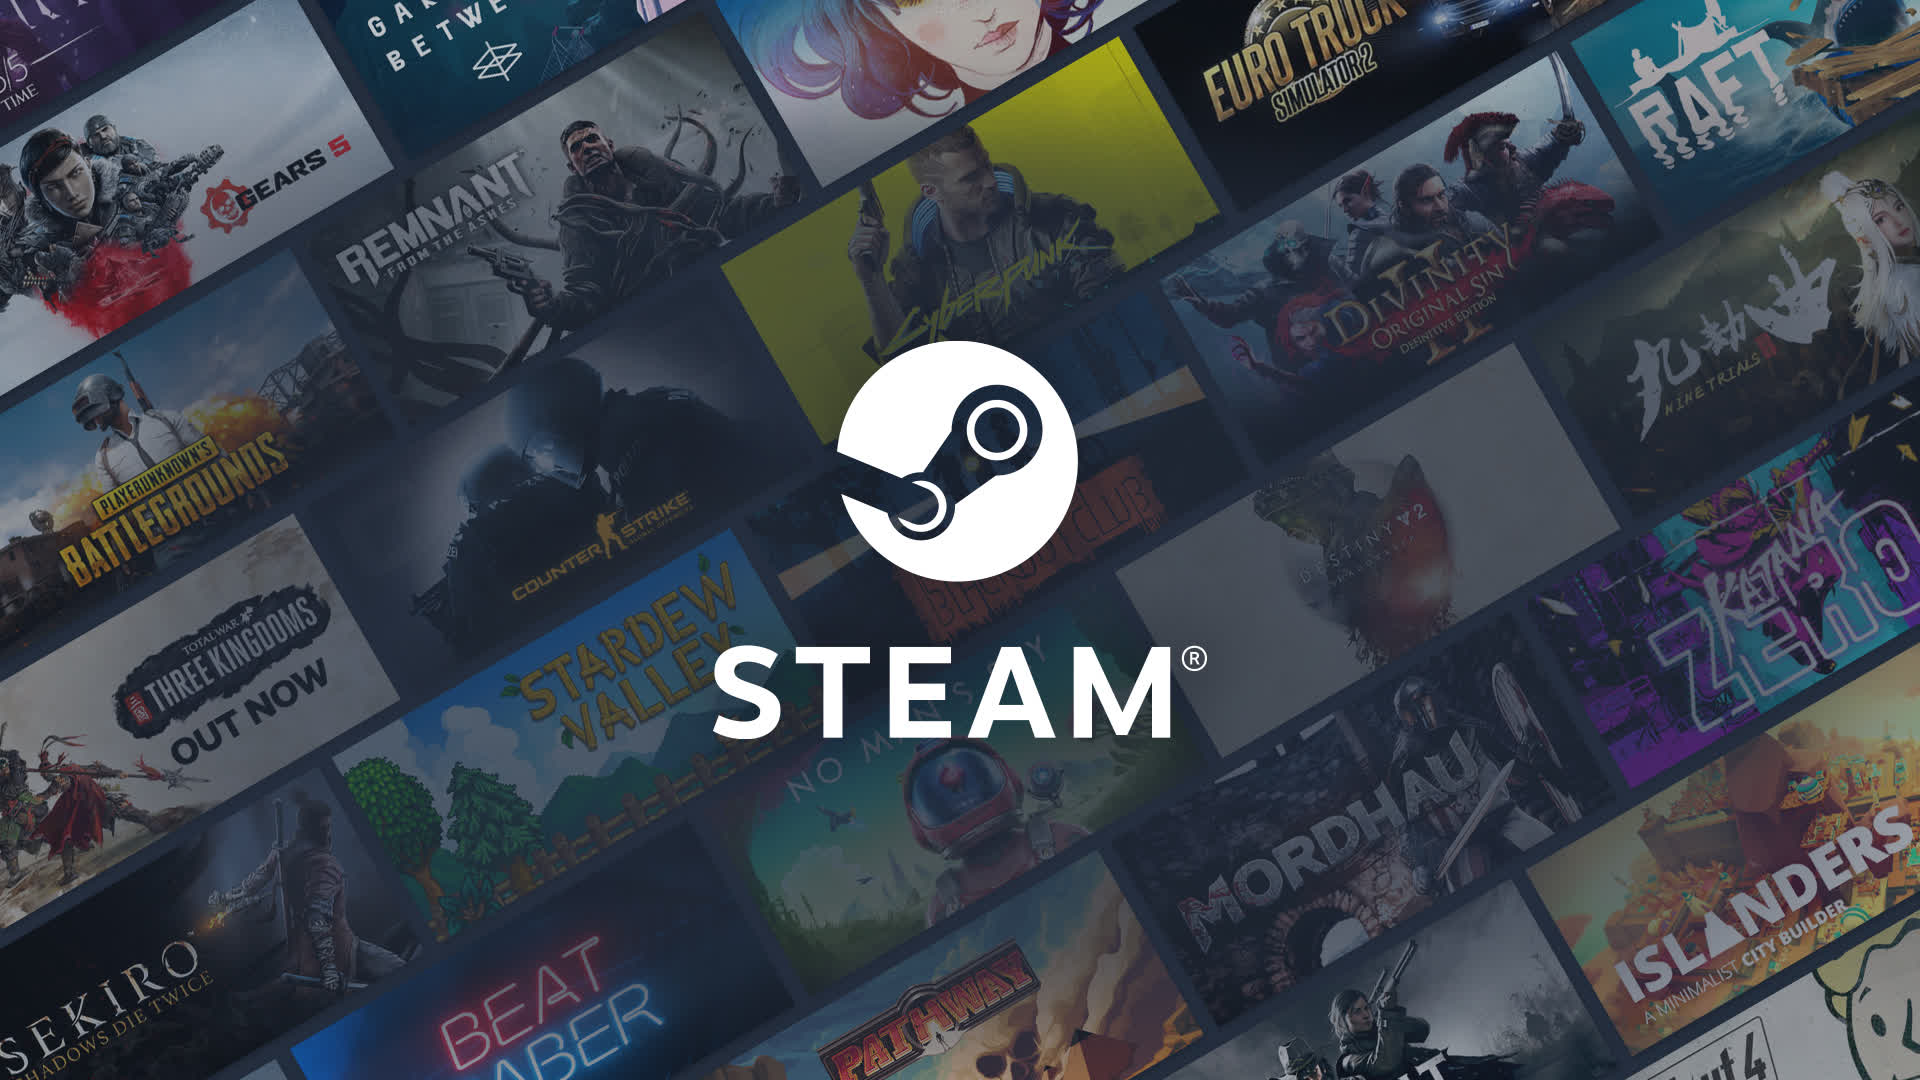 Apple requires gross sales records for hundreds of Steam games as segment of its honest battle with Account